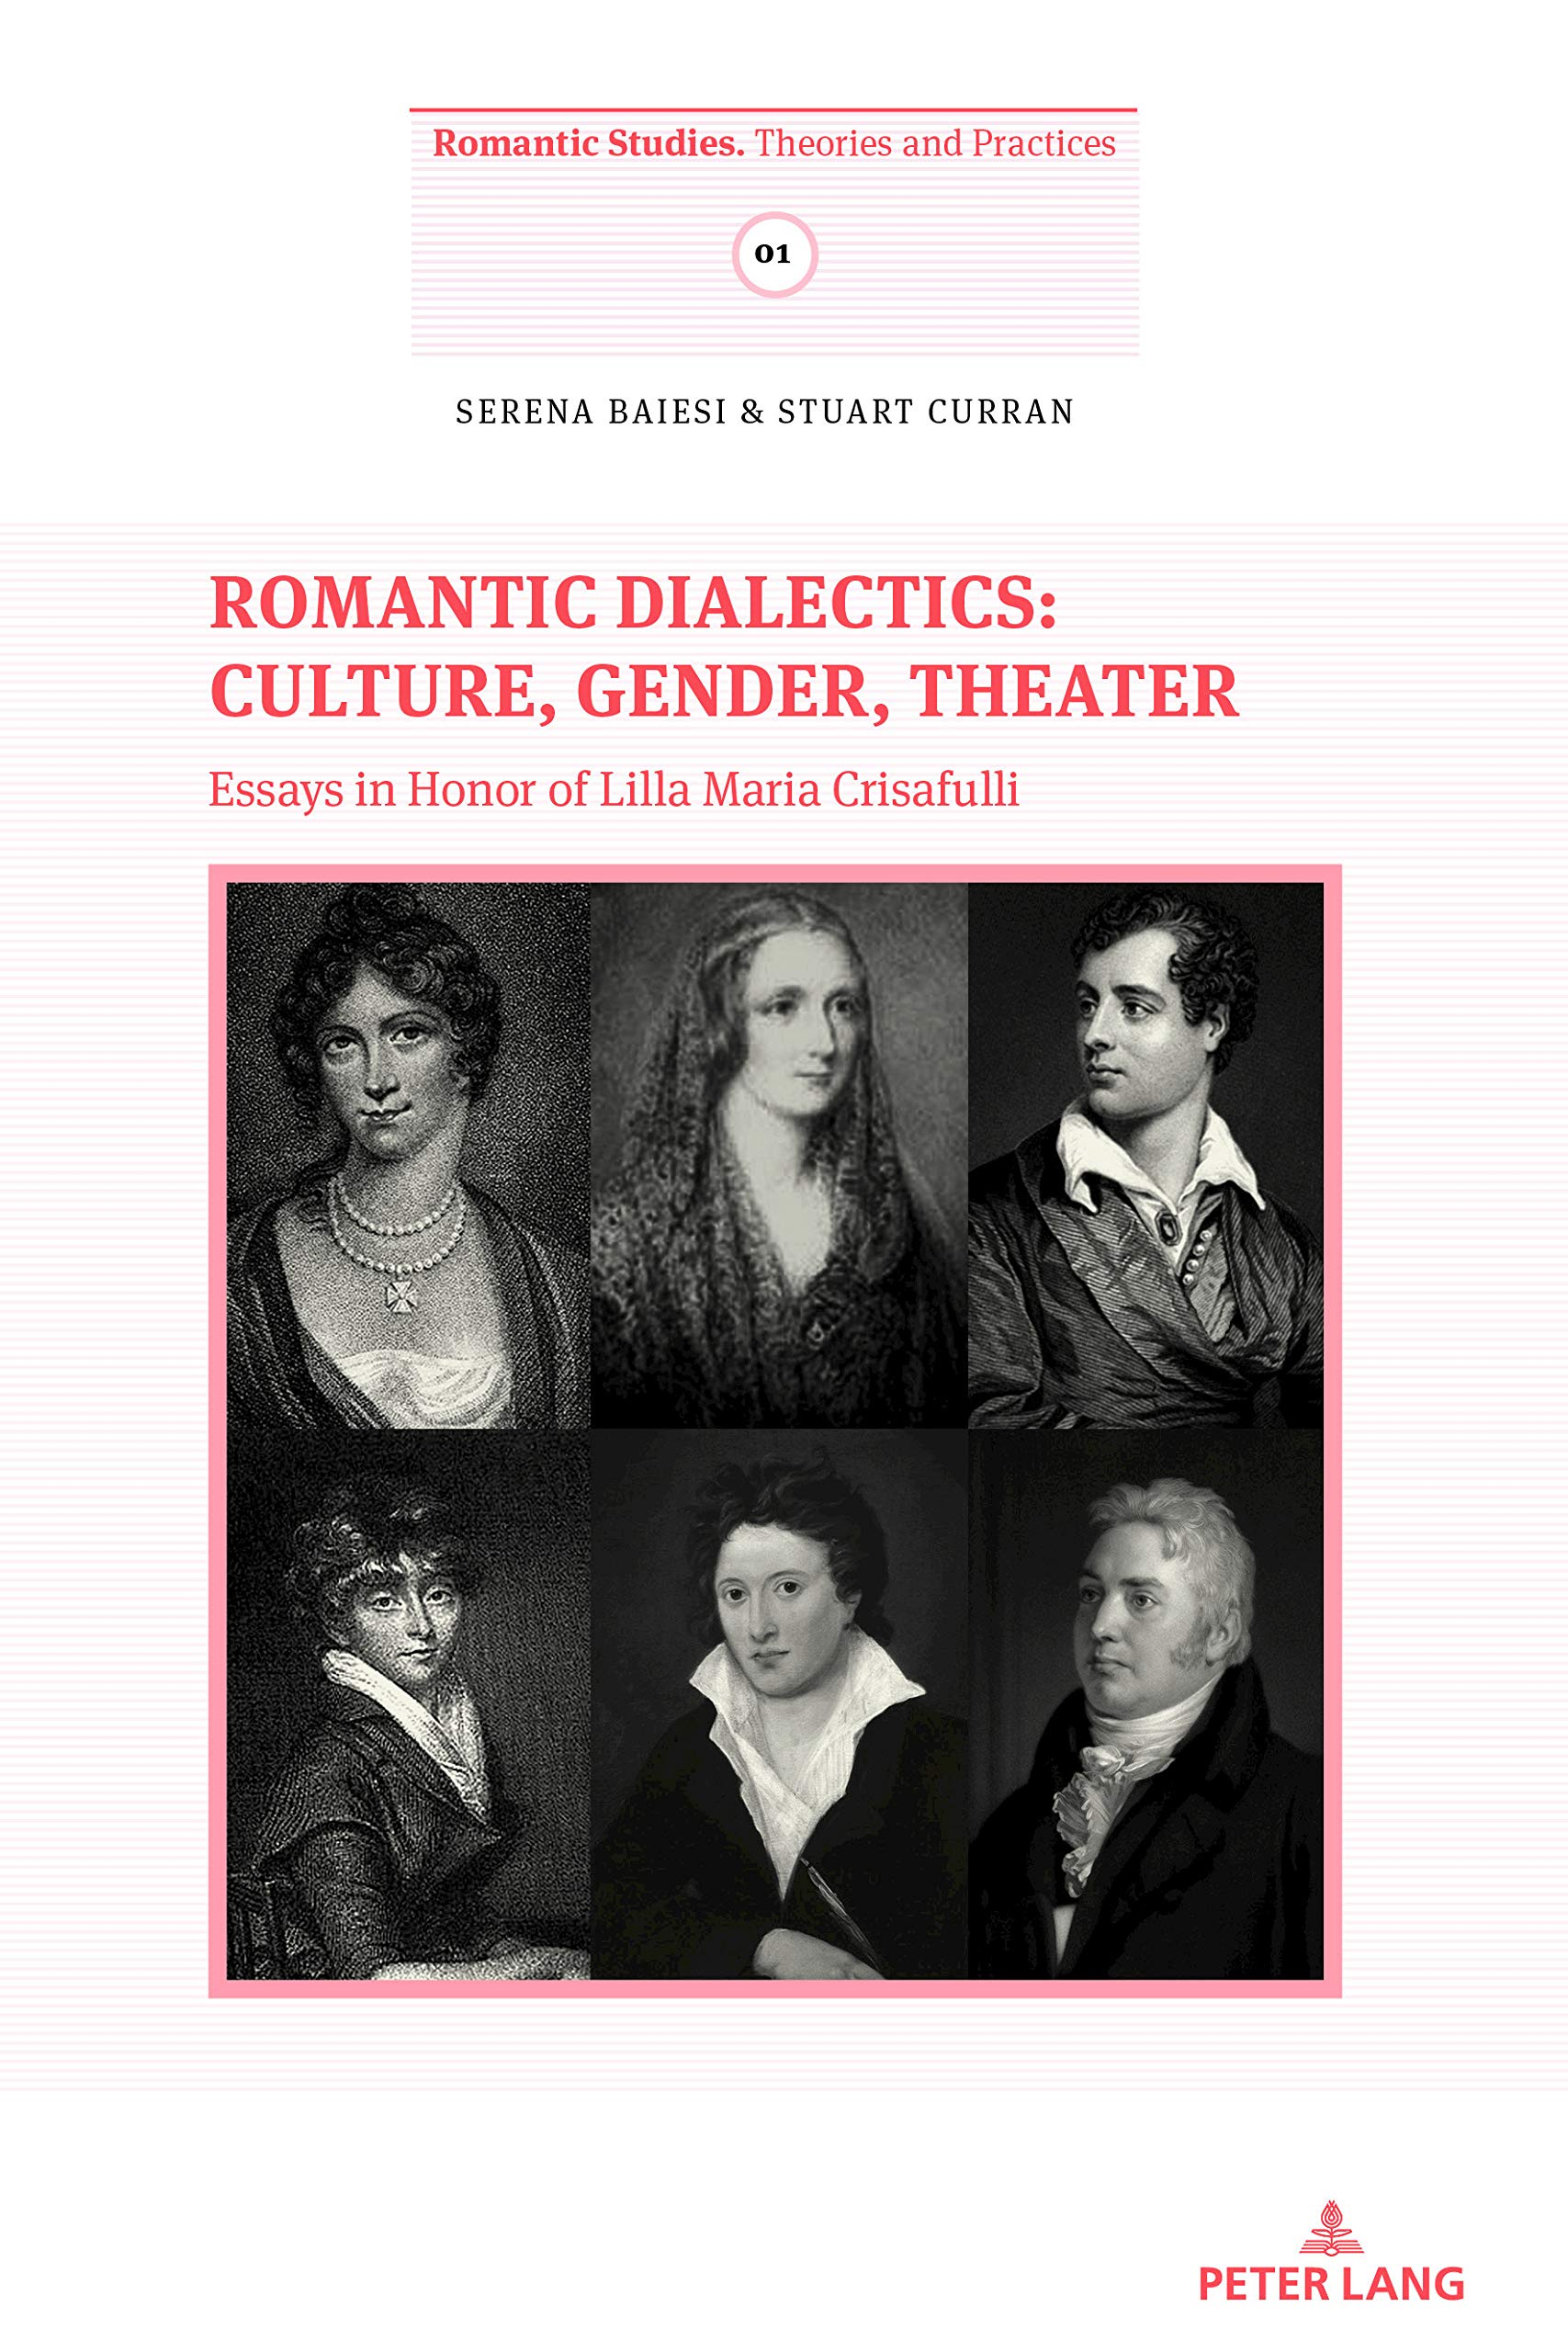 Romantic Dialectics: Culture, Gender, Theater: Essays in Honor of Lilla Maria Crisafulli (Romantic Studies) by Peter Lang AG, Internationaler Verlag der Wissenschaften